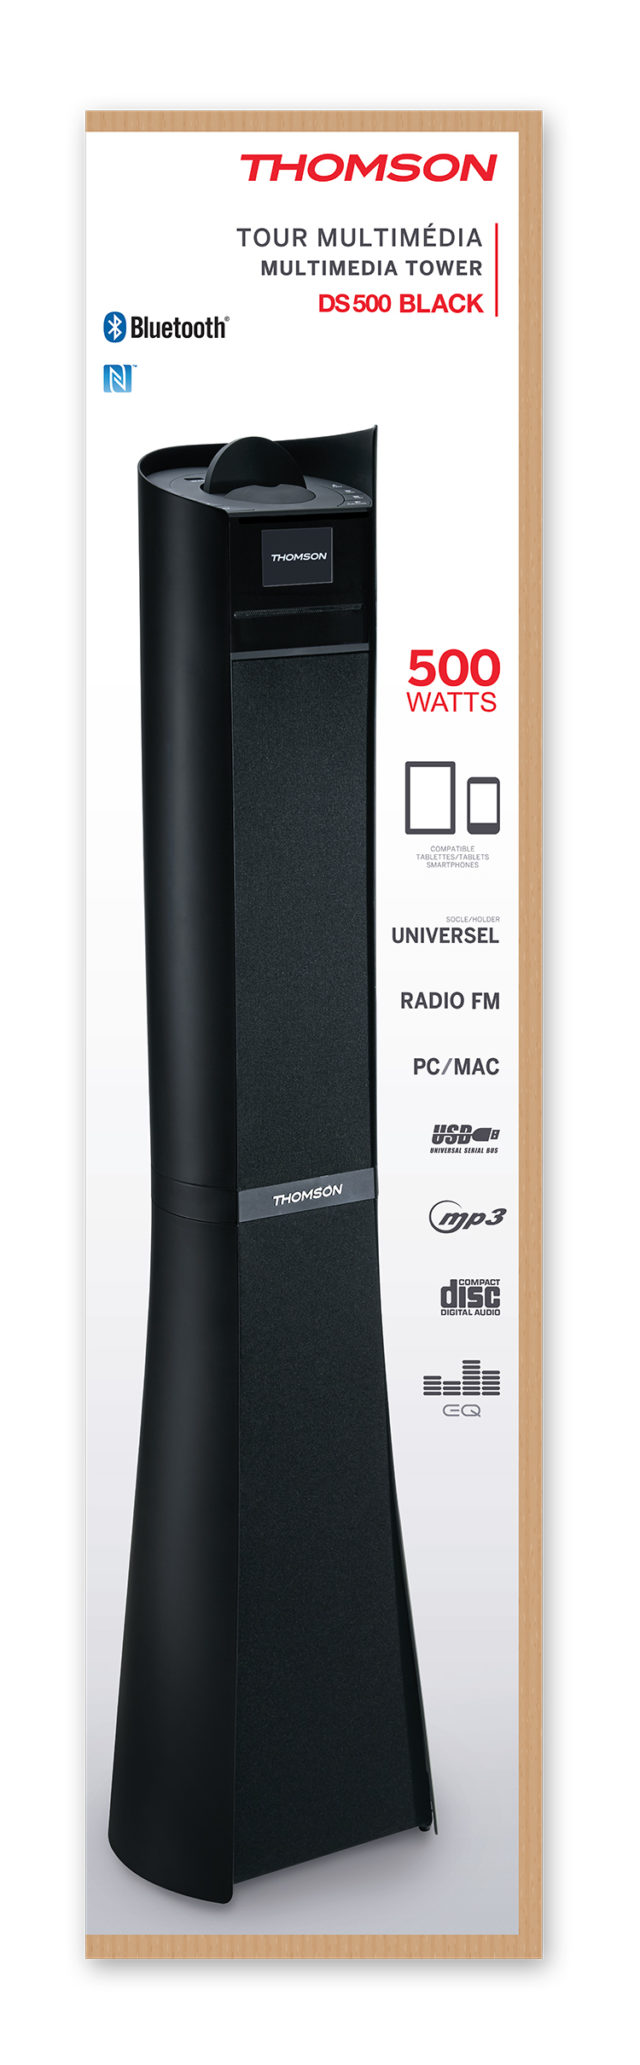 2.1CH Multimedia tower DS500BLACK THOMSON – Immagine#2tutu